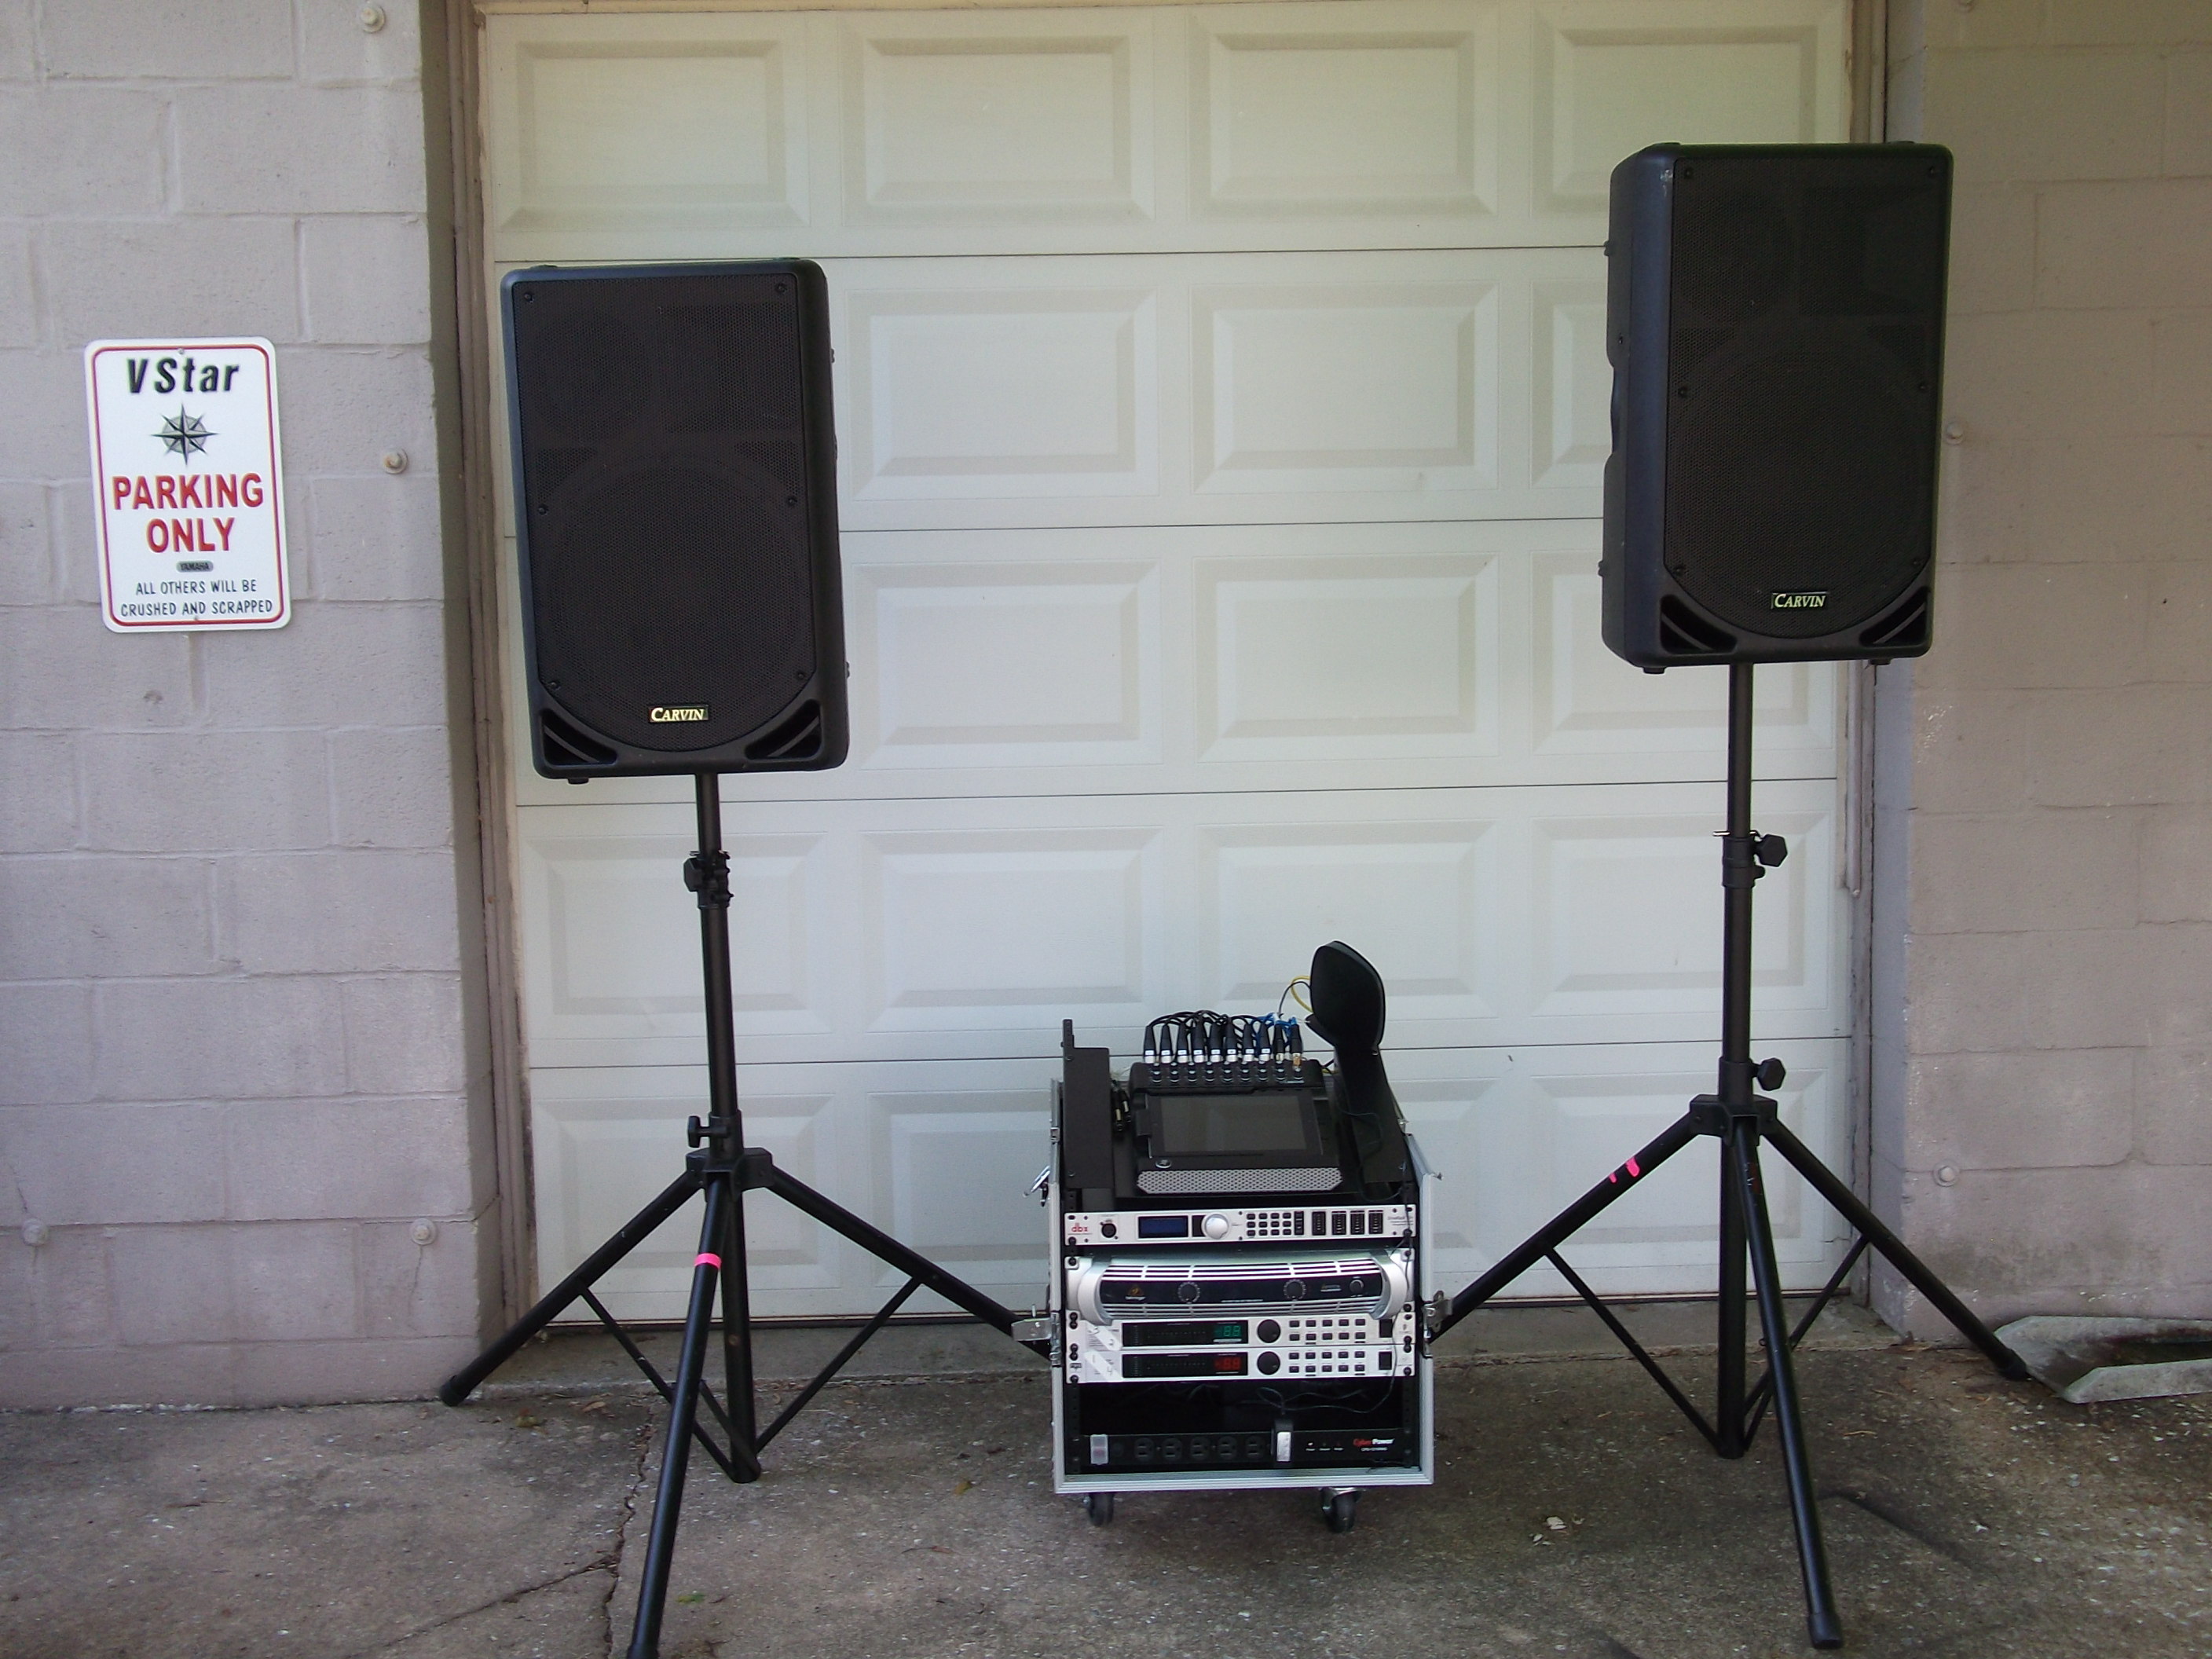 Etc Using Pre Recorded Audio Tracksup To 100 People Or For DJ Ing Very Small Groups40 Perfect System Wedding Receptions